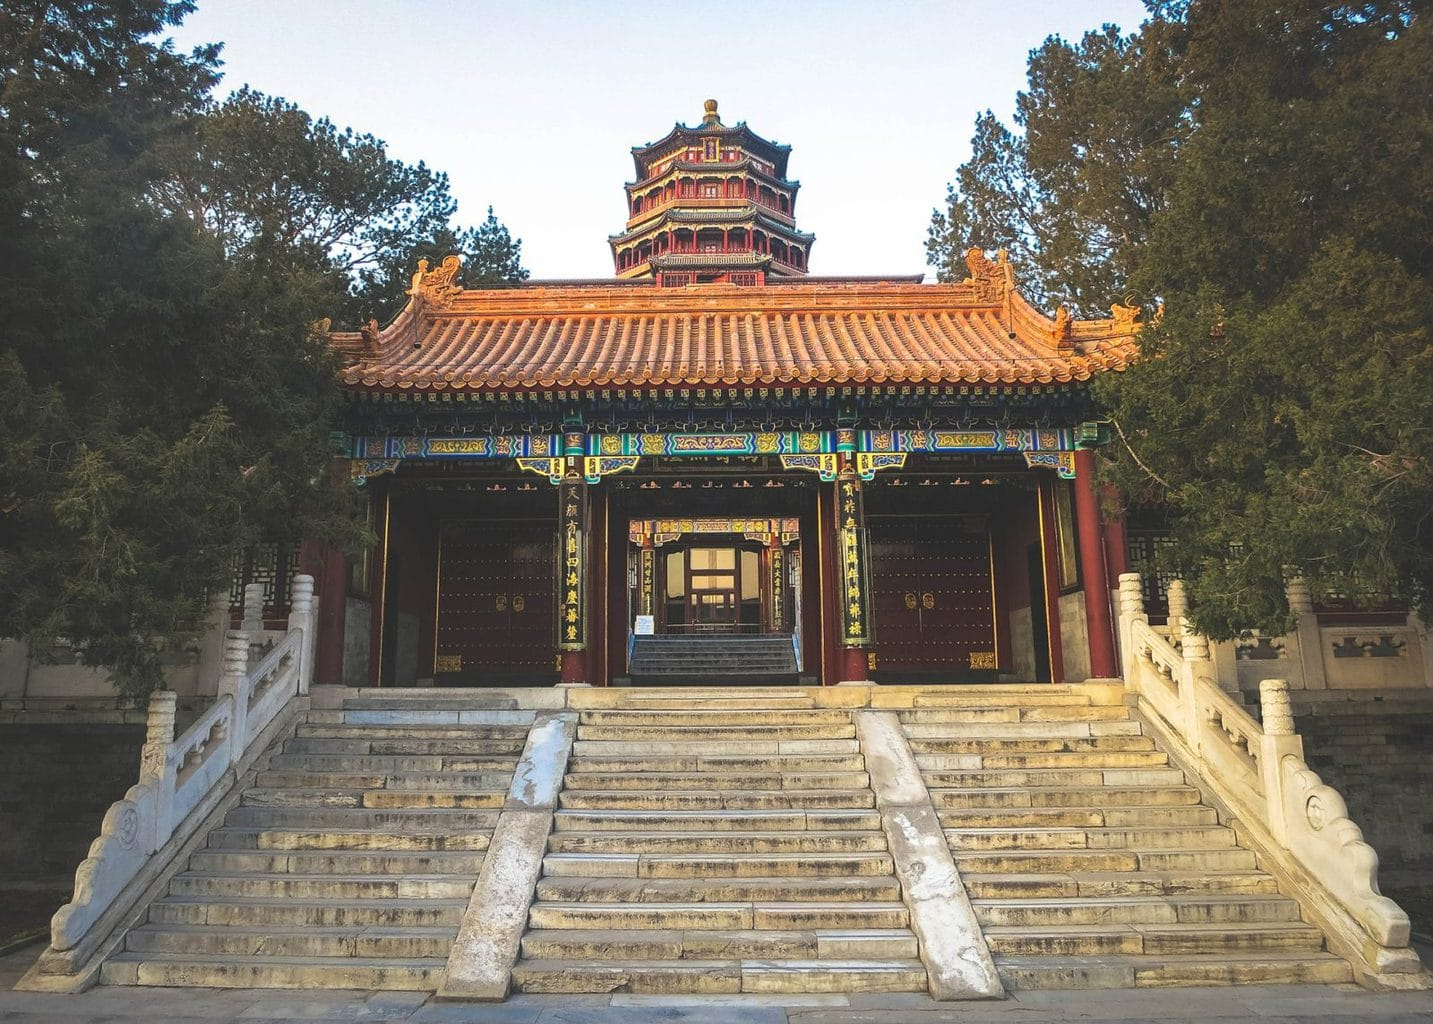 Picture of the Summer Palace in Beijing, China